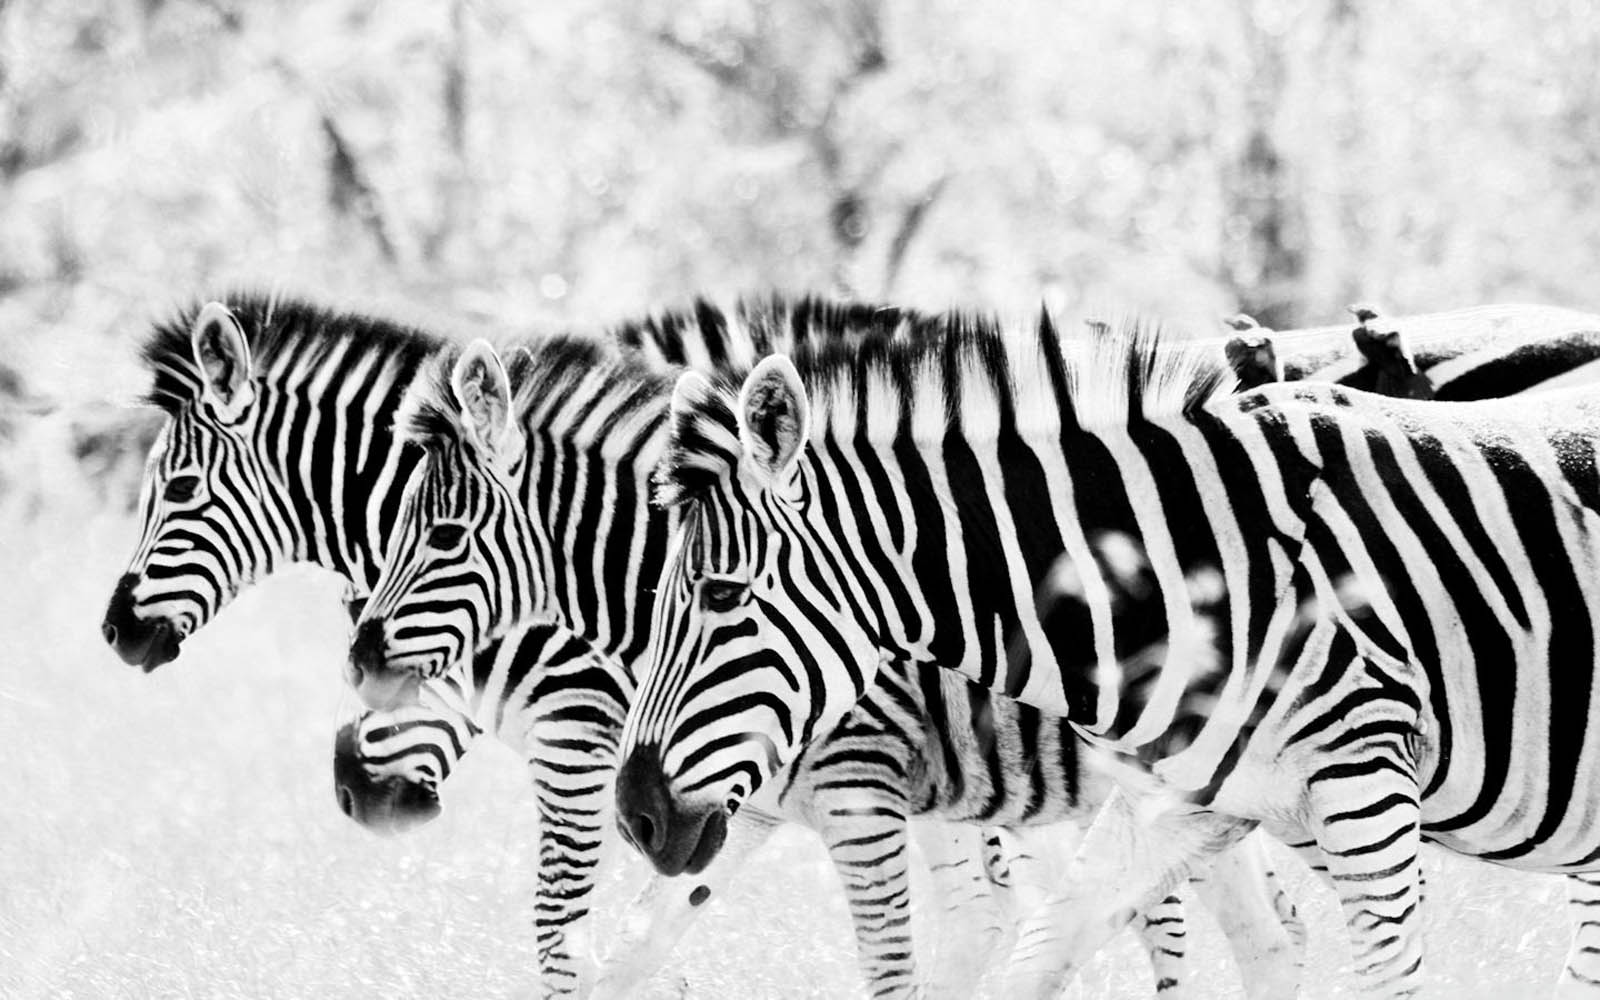 Zebra Wallpapers HD images Live HD Wallpaper HQ Pictures Images 1600x1000